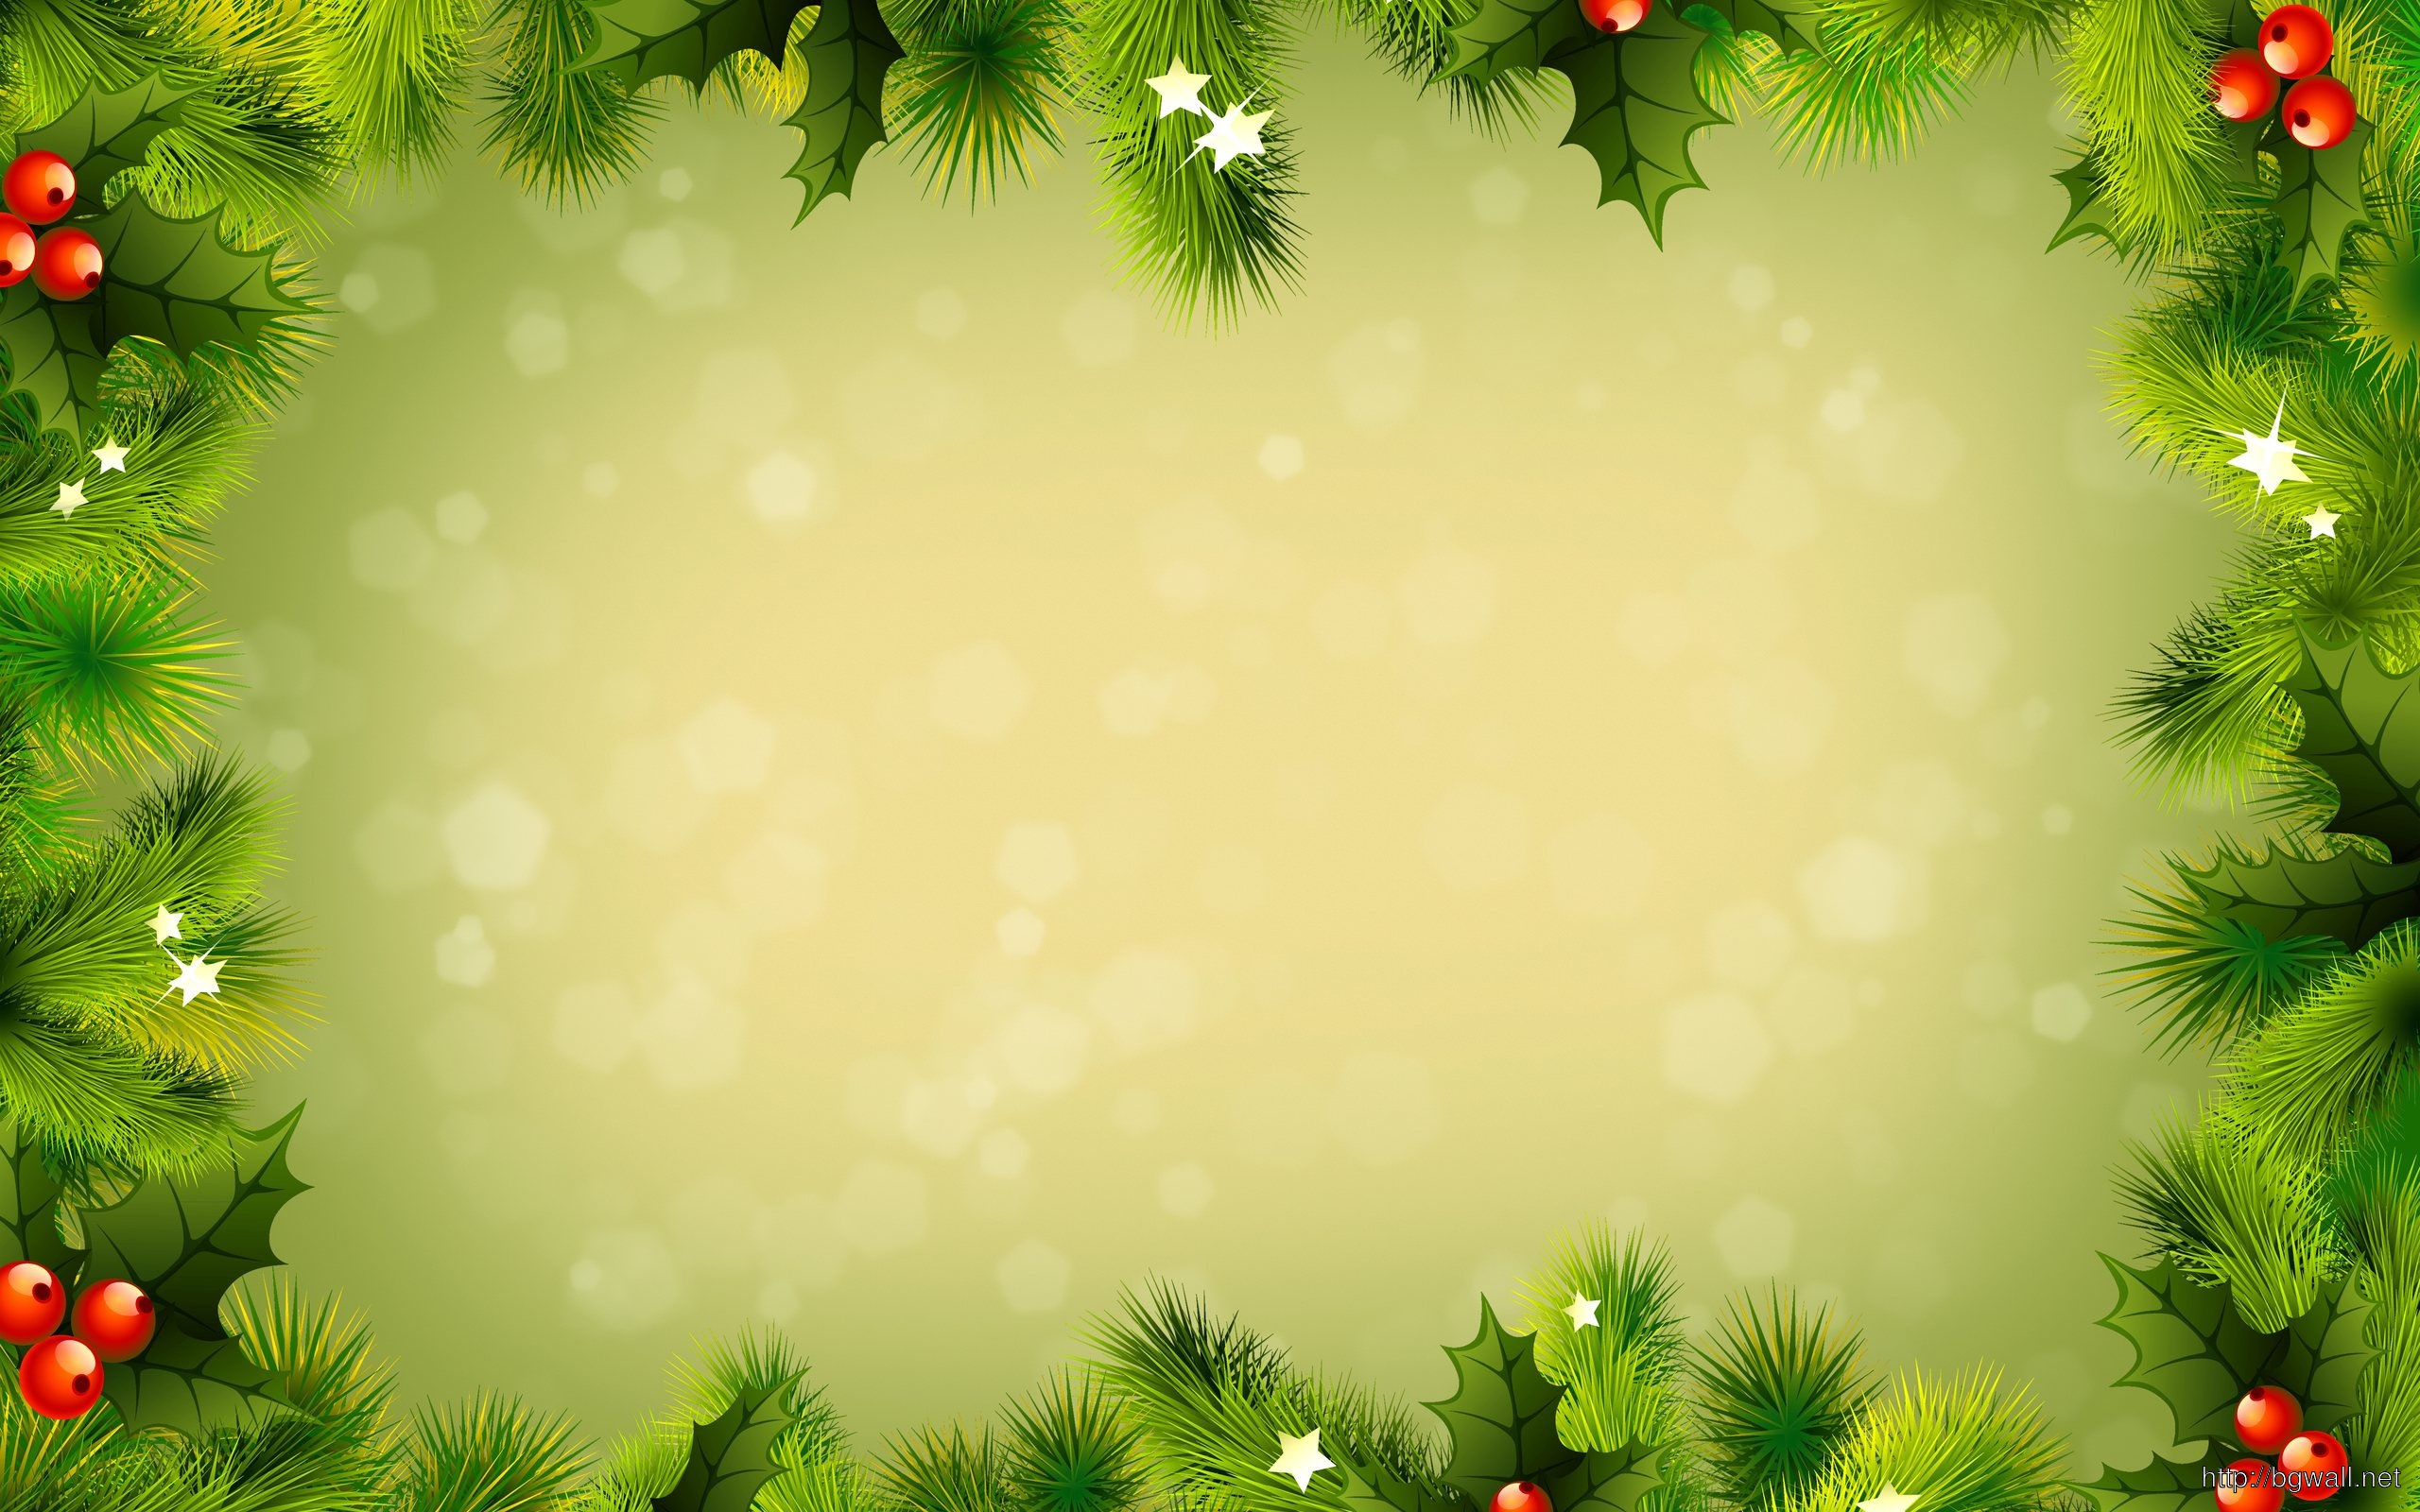 Christmas Background Wallpaper Background Wallpaper HD 2560x1600